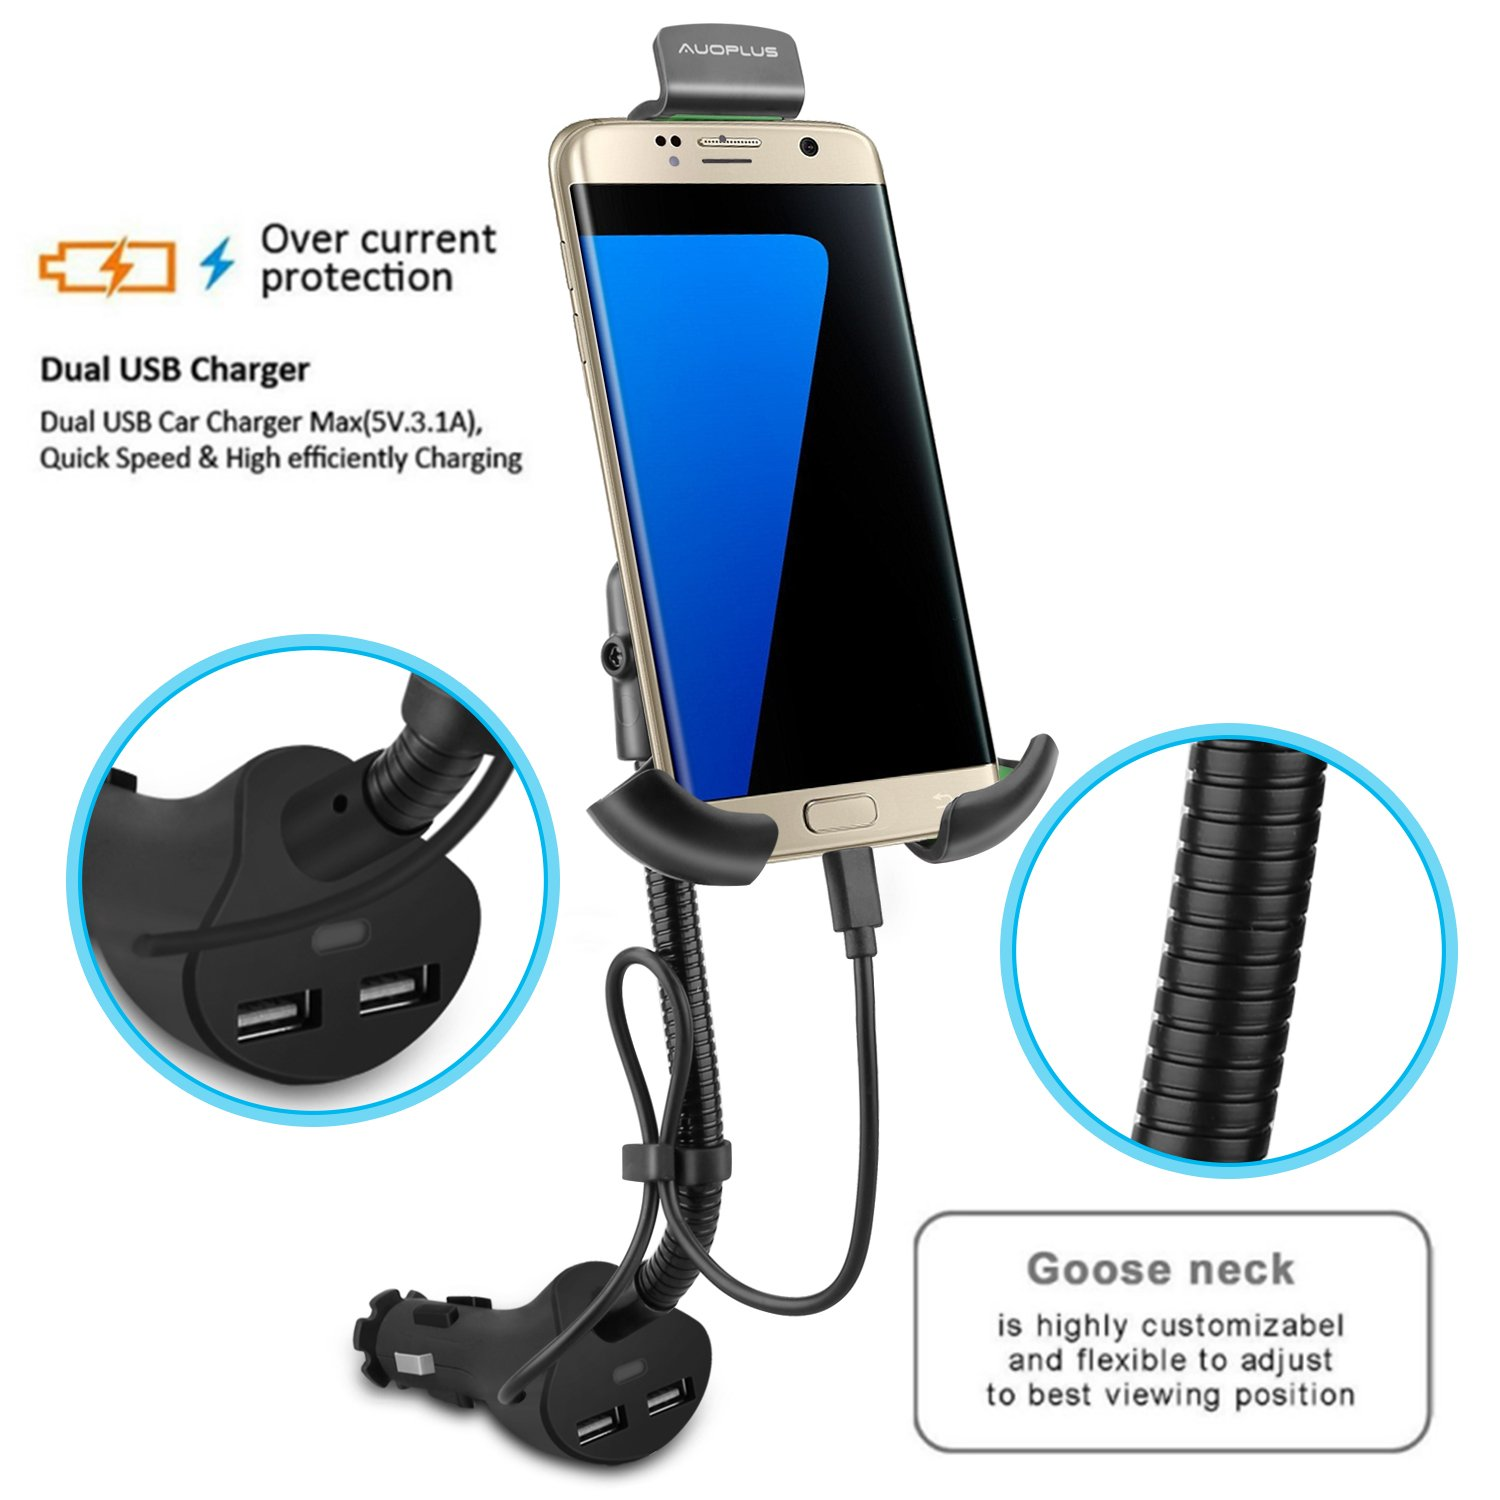 AUOPLUS Gooseneck Car Outlet Mount Cigarette Lighter Phone Holder Charger with Built-in Charging Cord for Samsung Galaxy and More Android Smartphones by AUOPLUS (Image #5)